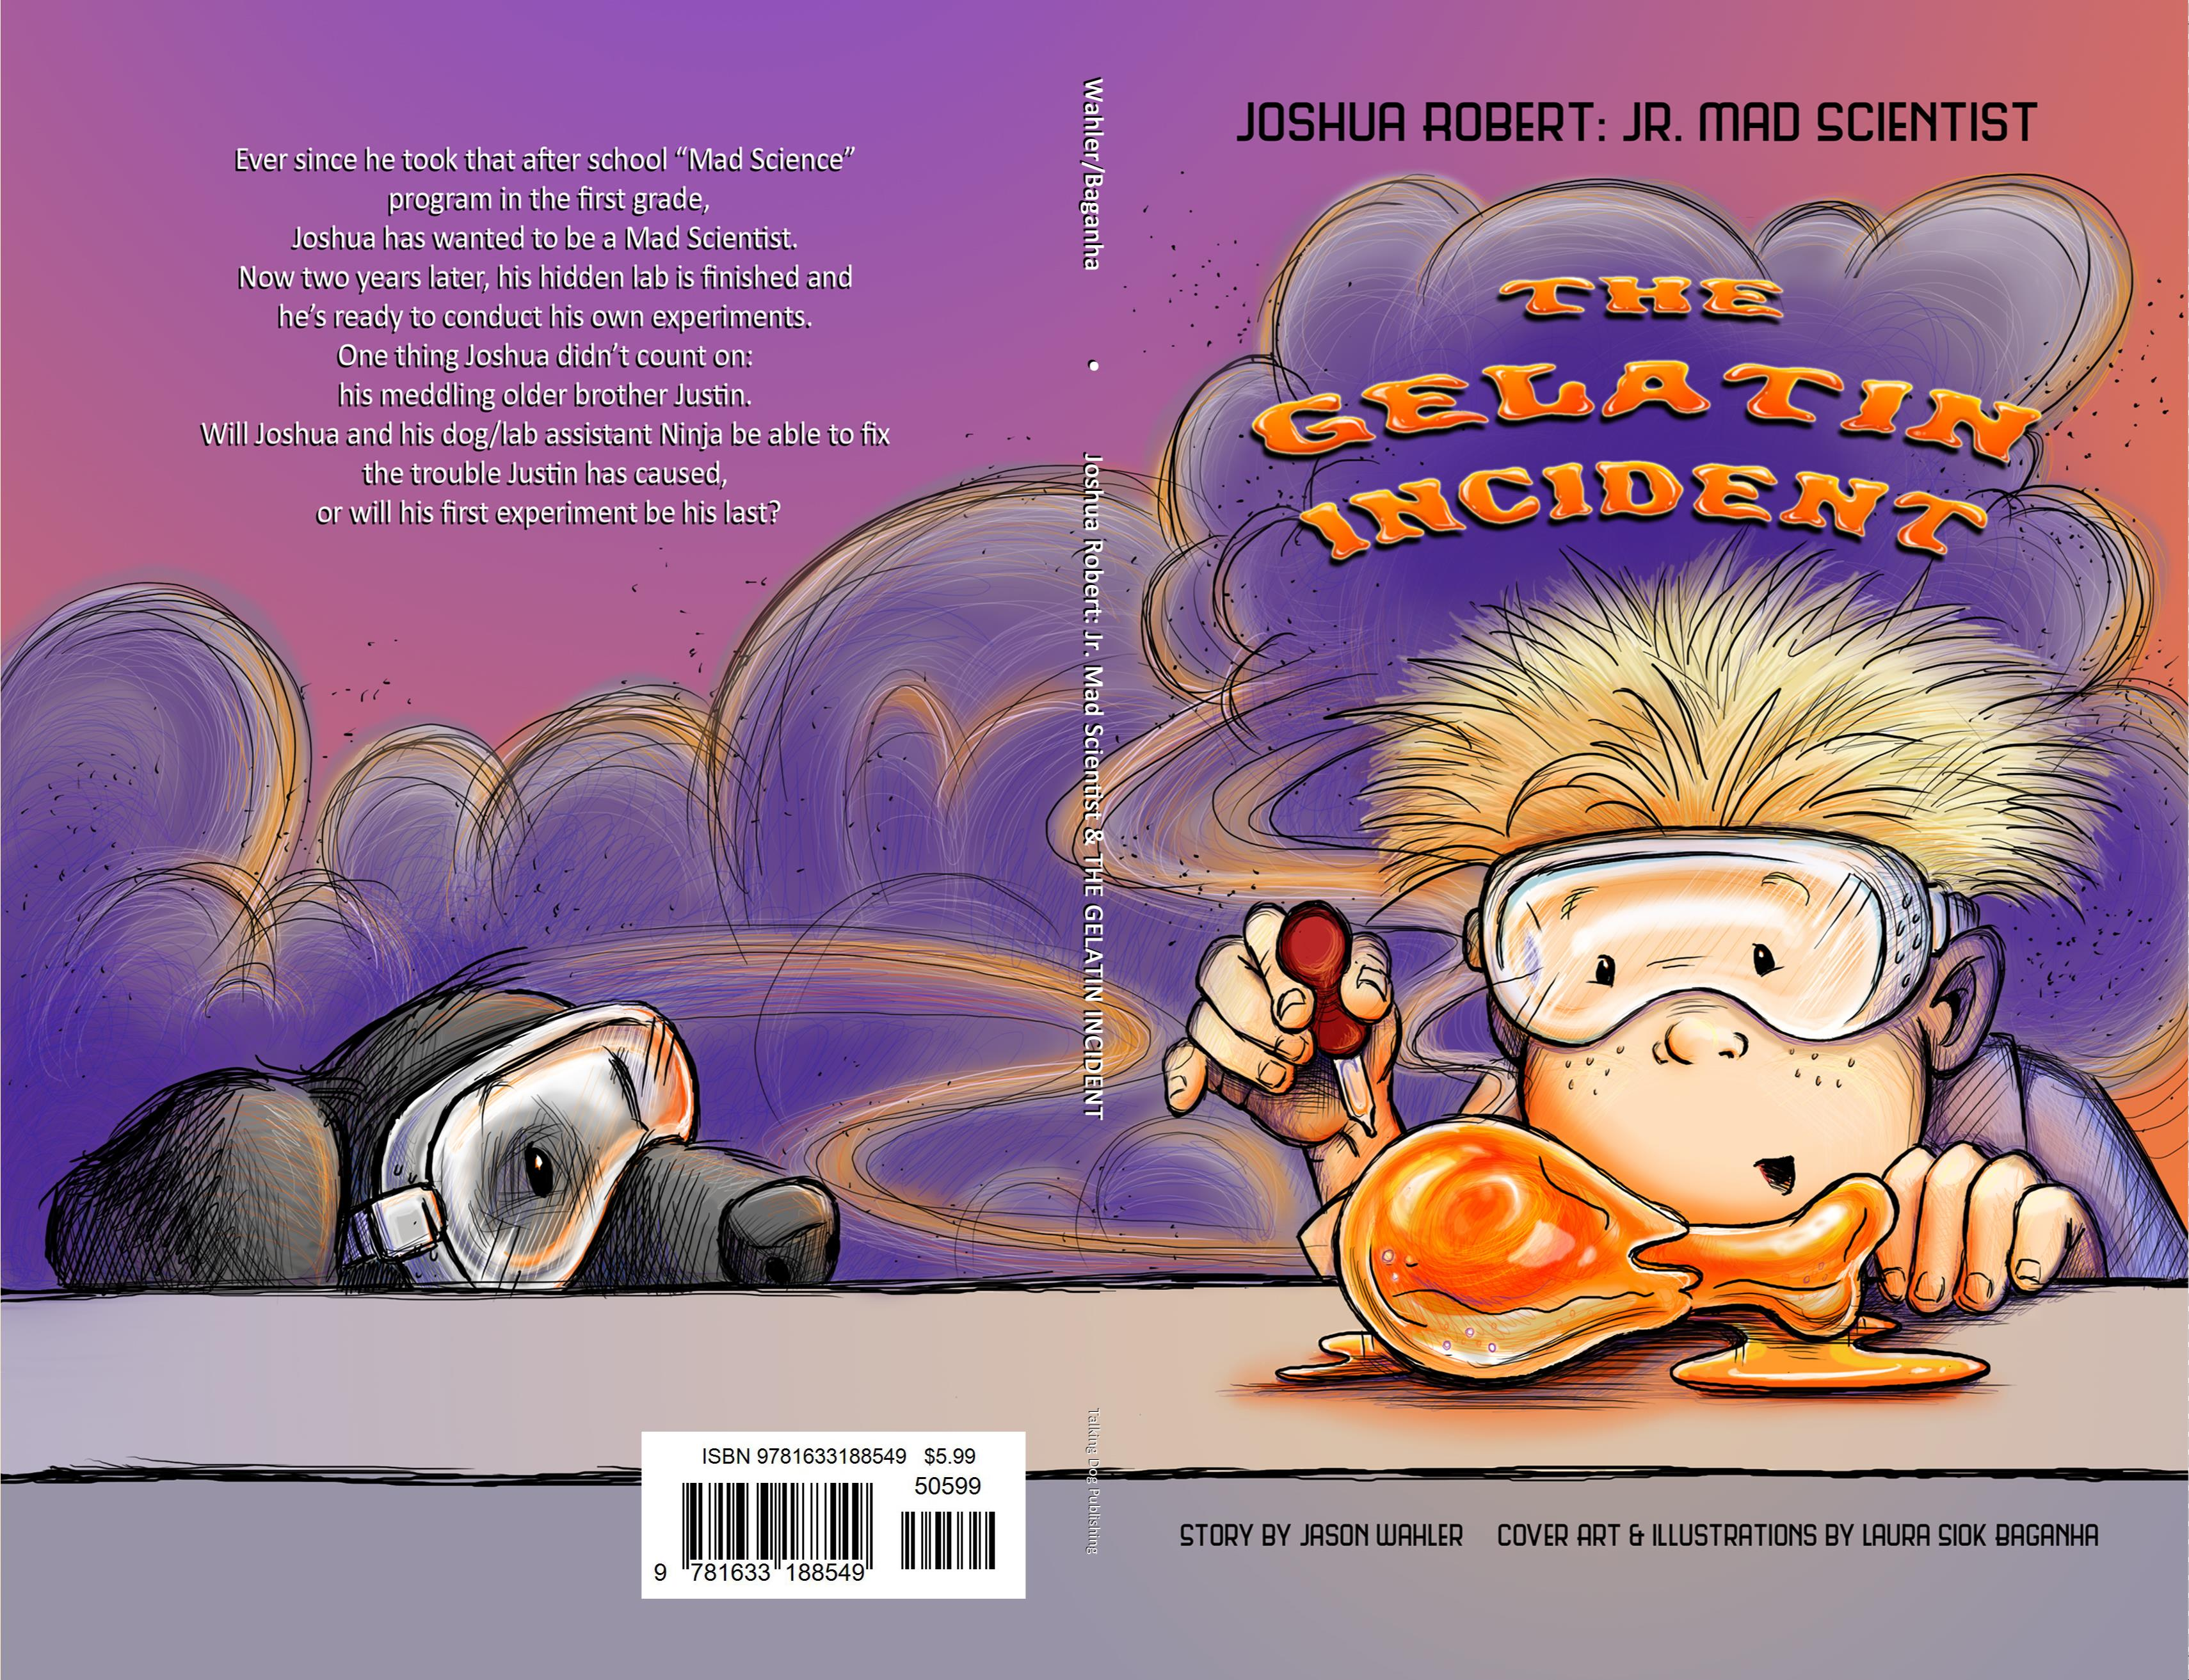 Joshua Robert: Jr. Mad Scientist & The Gelatin Incident cover image